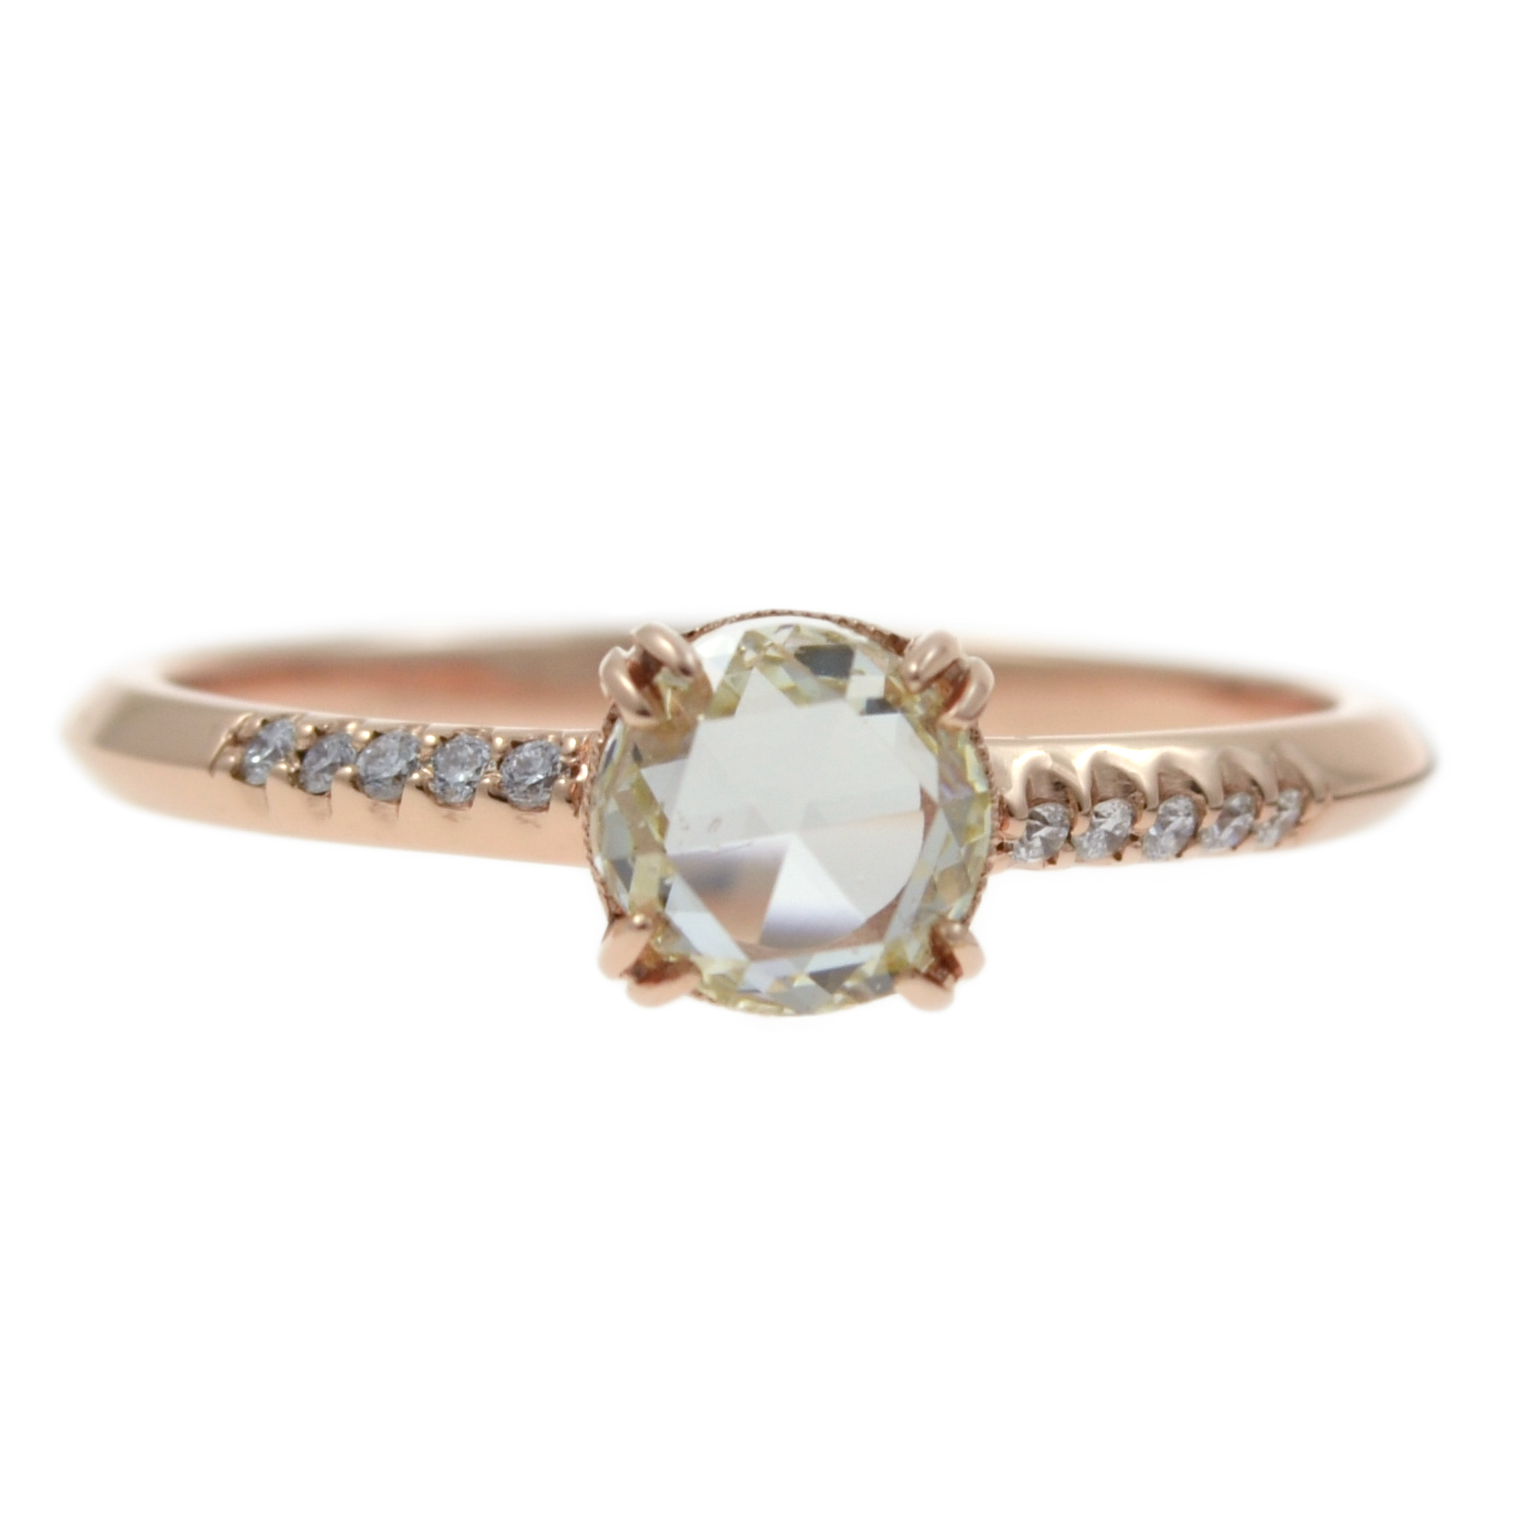 pin cut engagement petite with stunning delicate and milgrain ring vintage diamonds grey diamond rose a rings